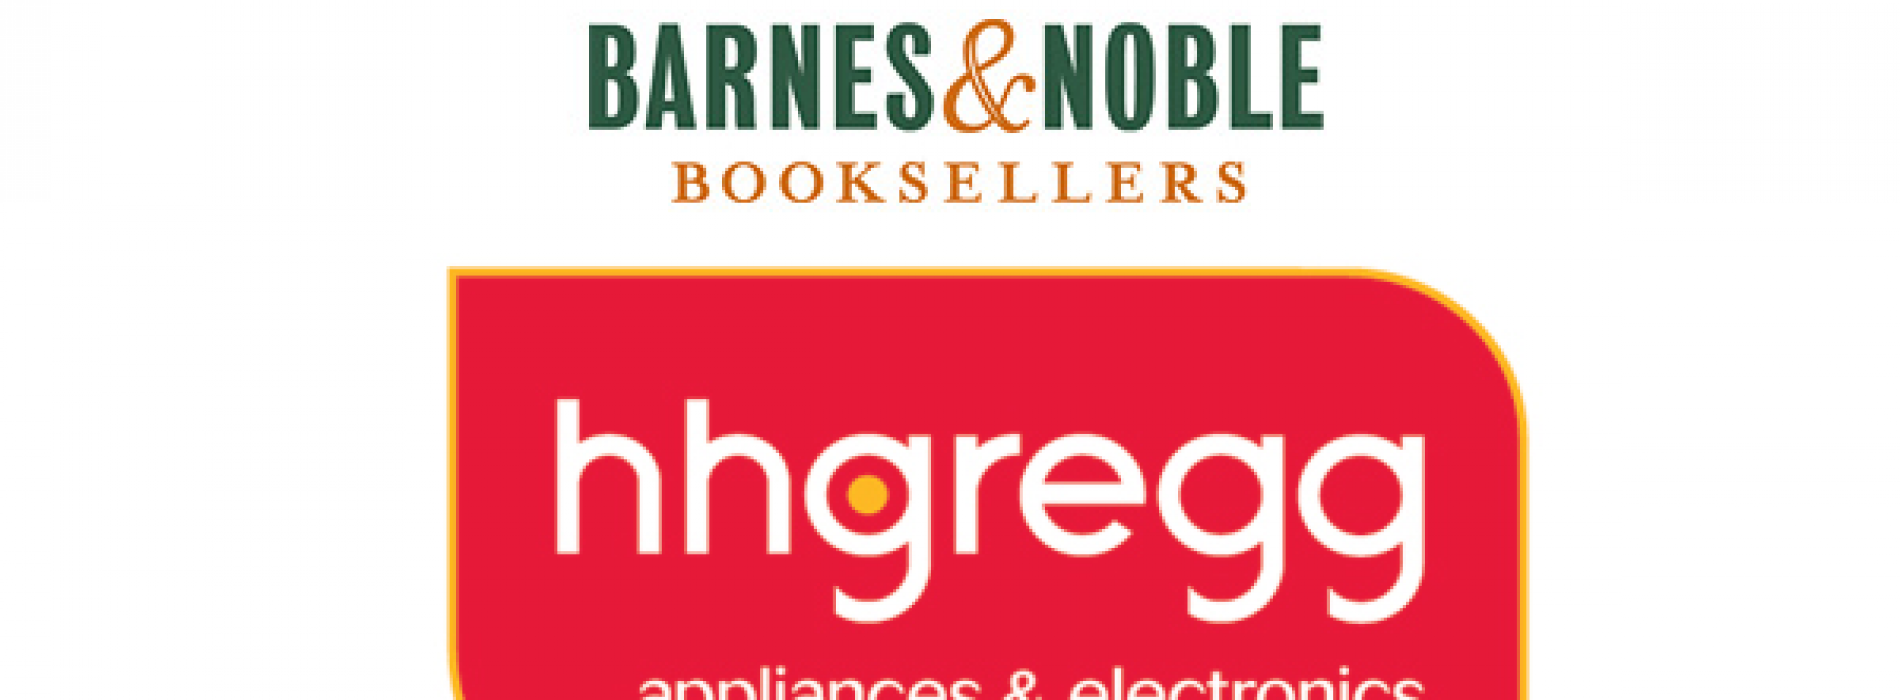 NOOK lineup coming to hhgregg in November